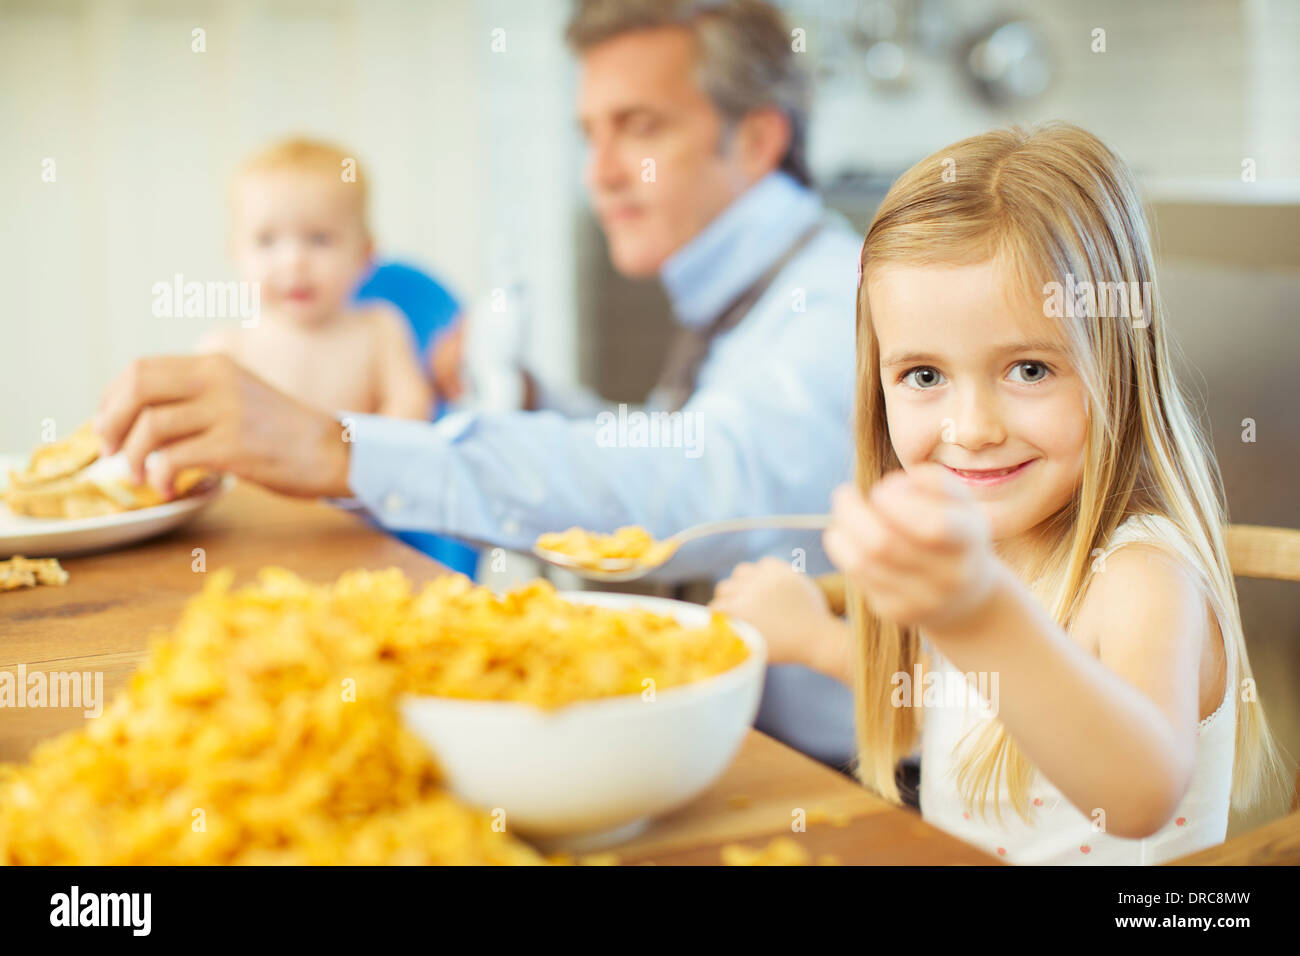 Girl eating overflowing bowl of cereal - Stock Image